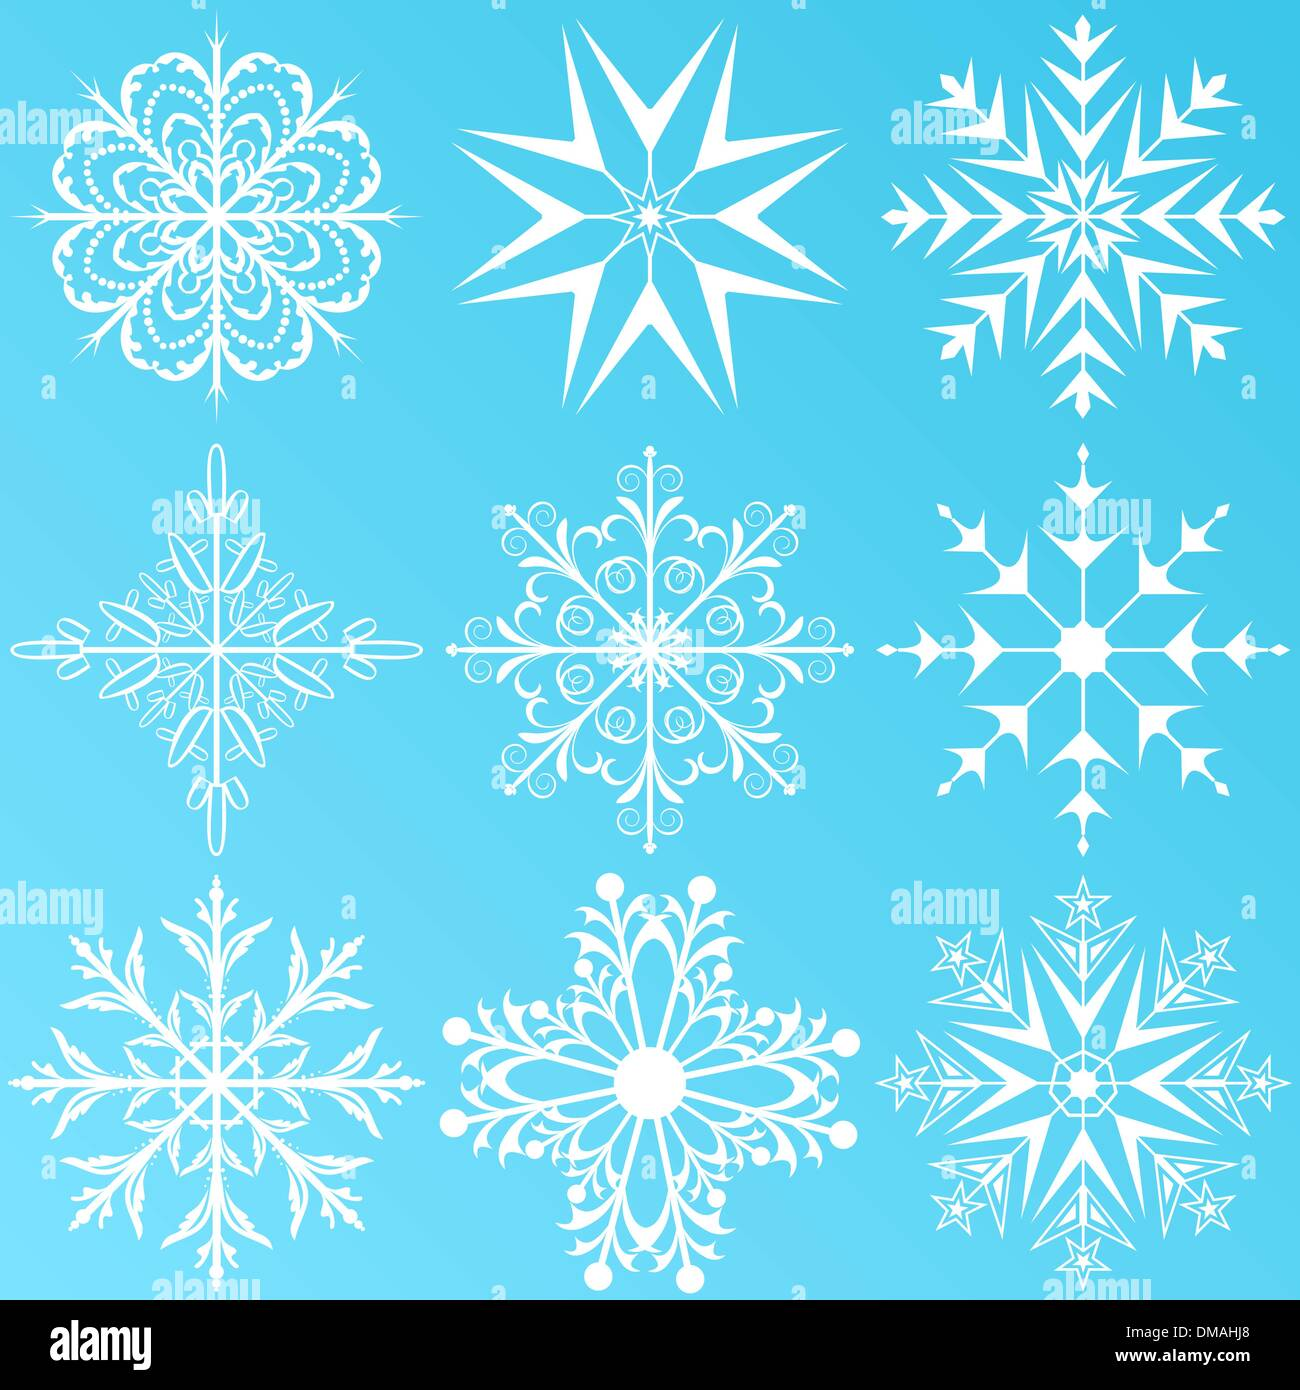 set variation snowflakes isolated - Stock Image